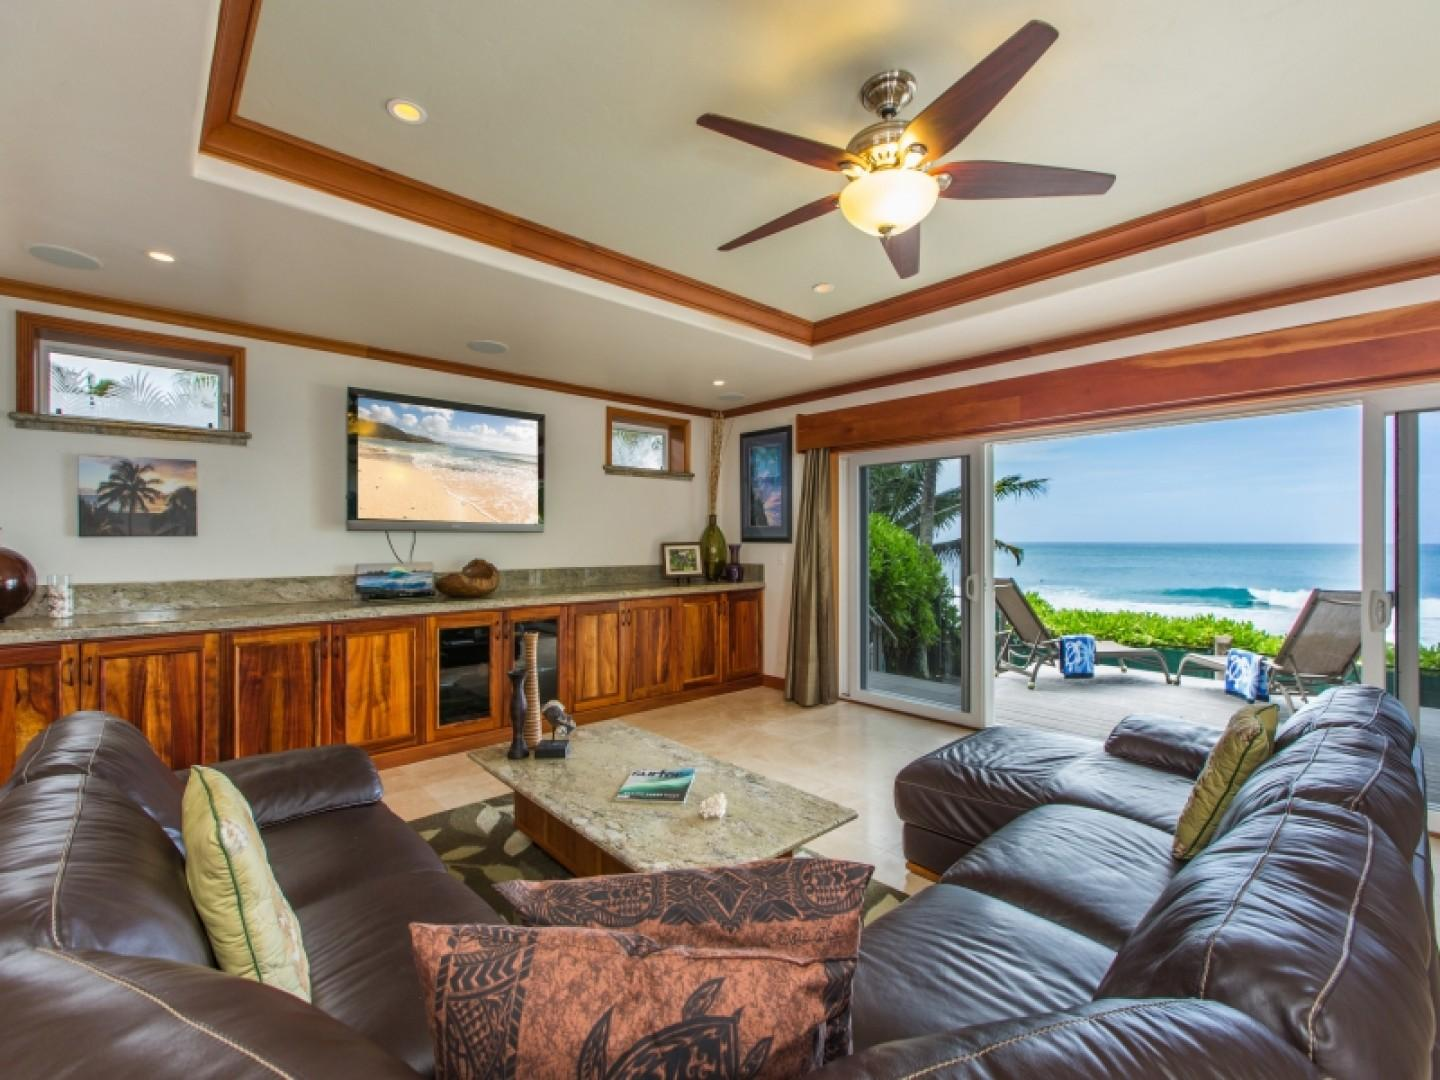 Living area with ocean views of Banzai Pipeline.